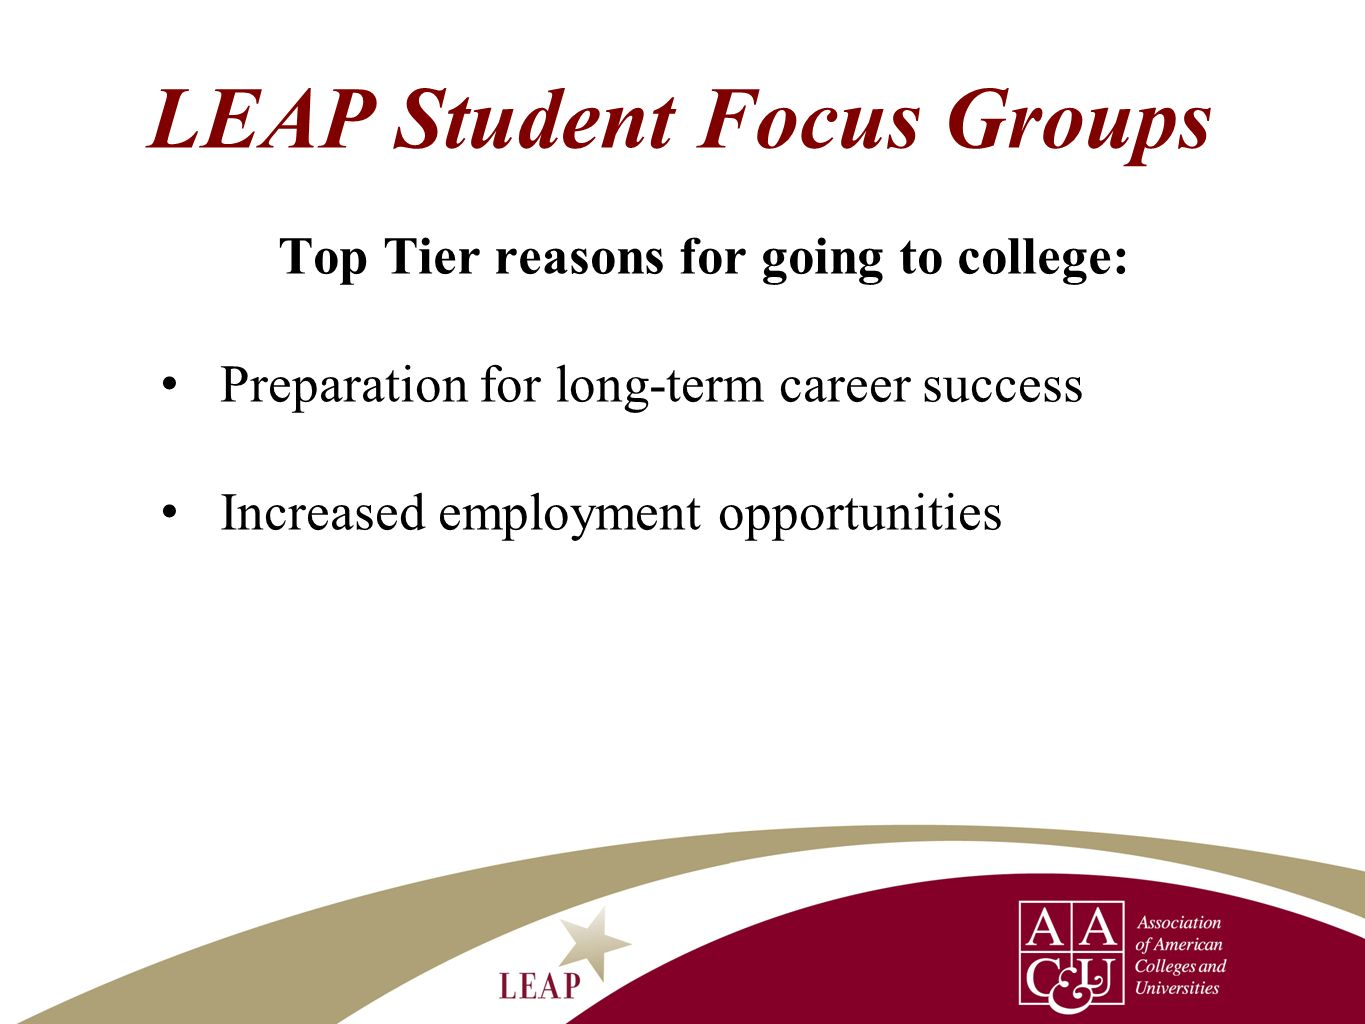 LEAP Student Focus Groups